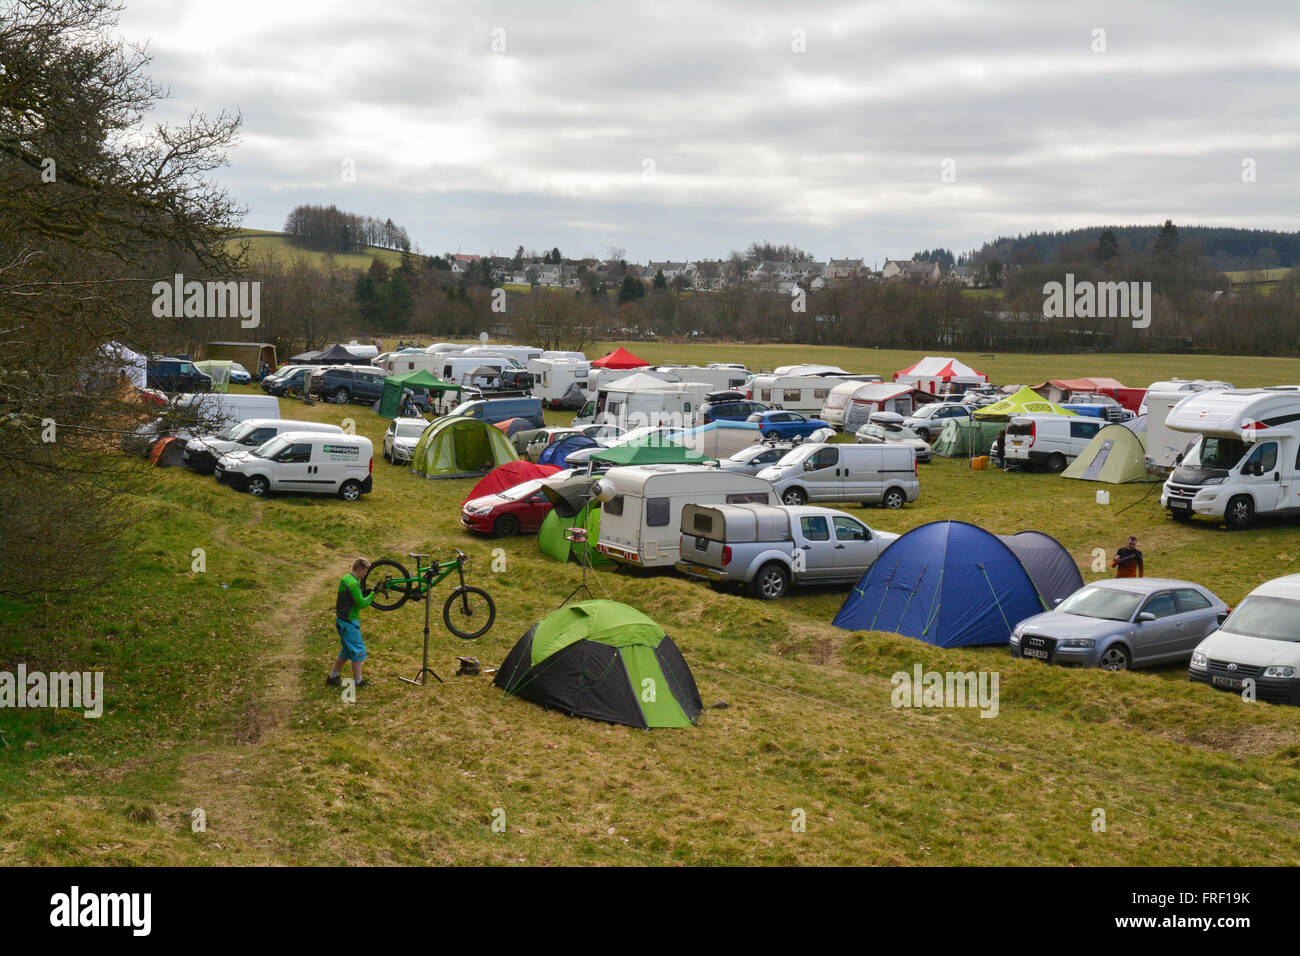 SDA (Scottish Downhill Association) race weekend at Ae Forest, Dumfries, Scotland, UK - with the village of Ae in - Stock Image